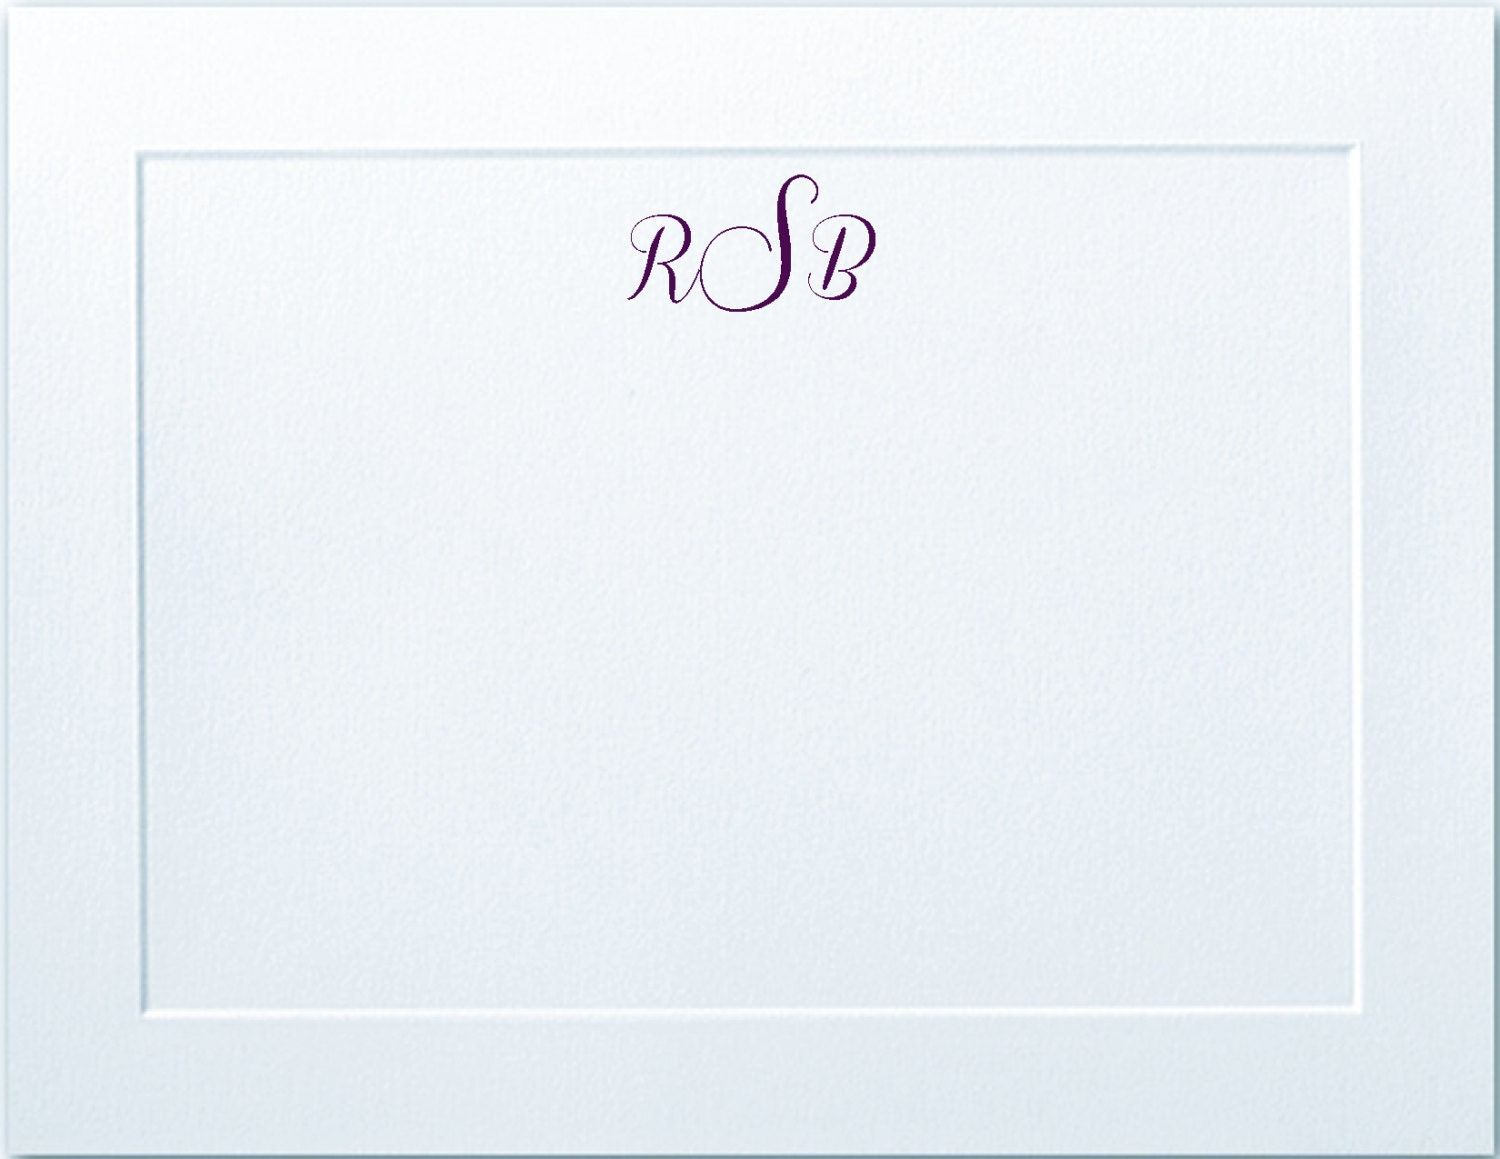 embossed panel monogrammed personalized flat note cards stationery teacher gift thank you cards notecards christmas gift stationary - Personalized Flat Note Cards